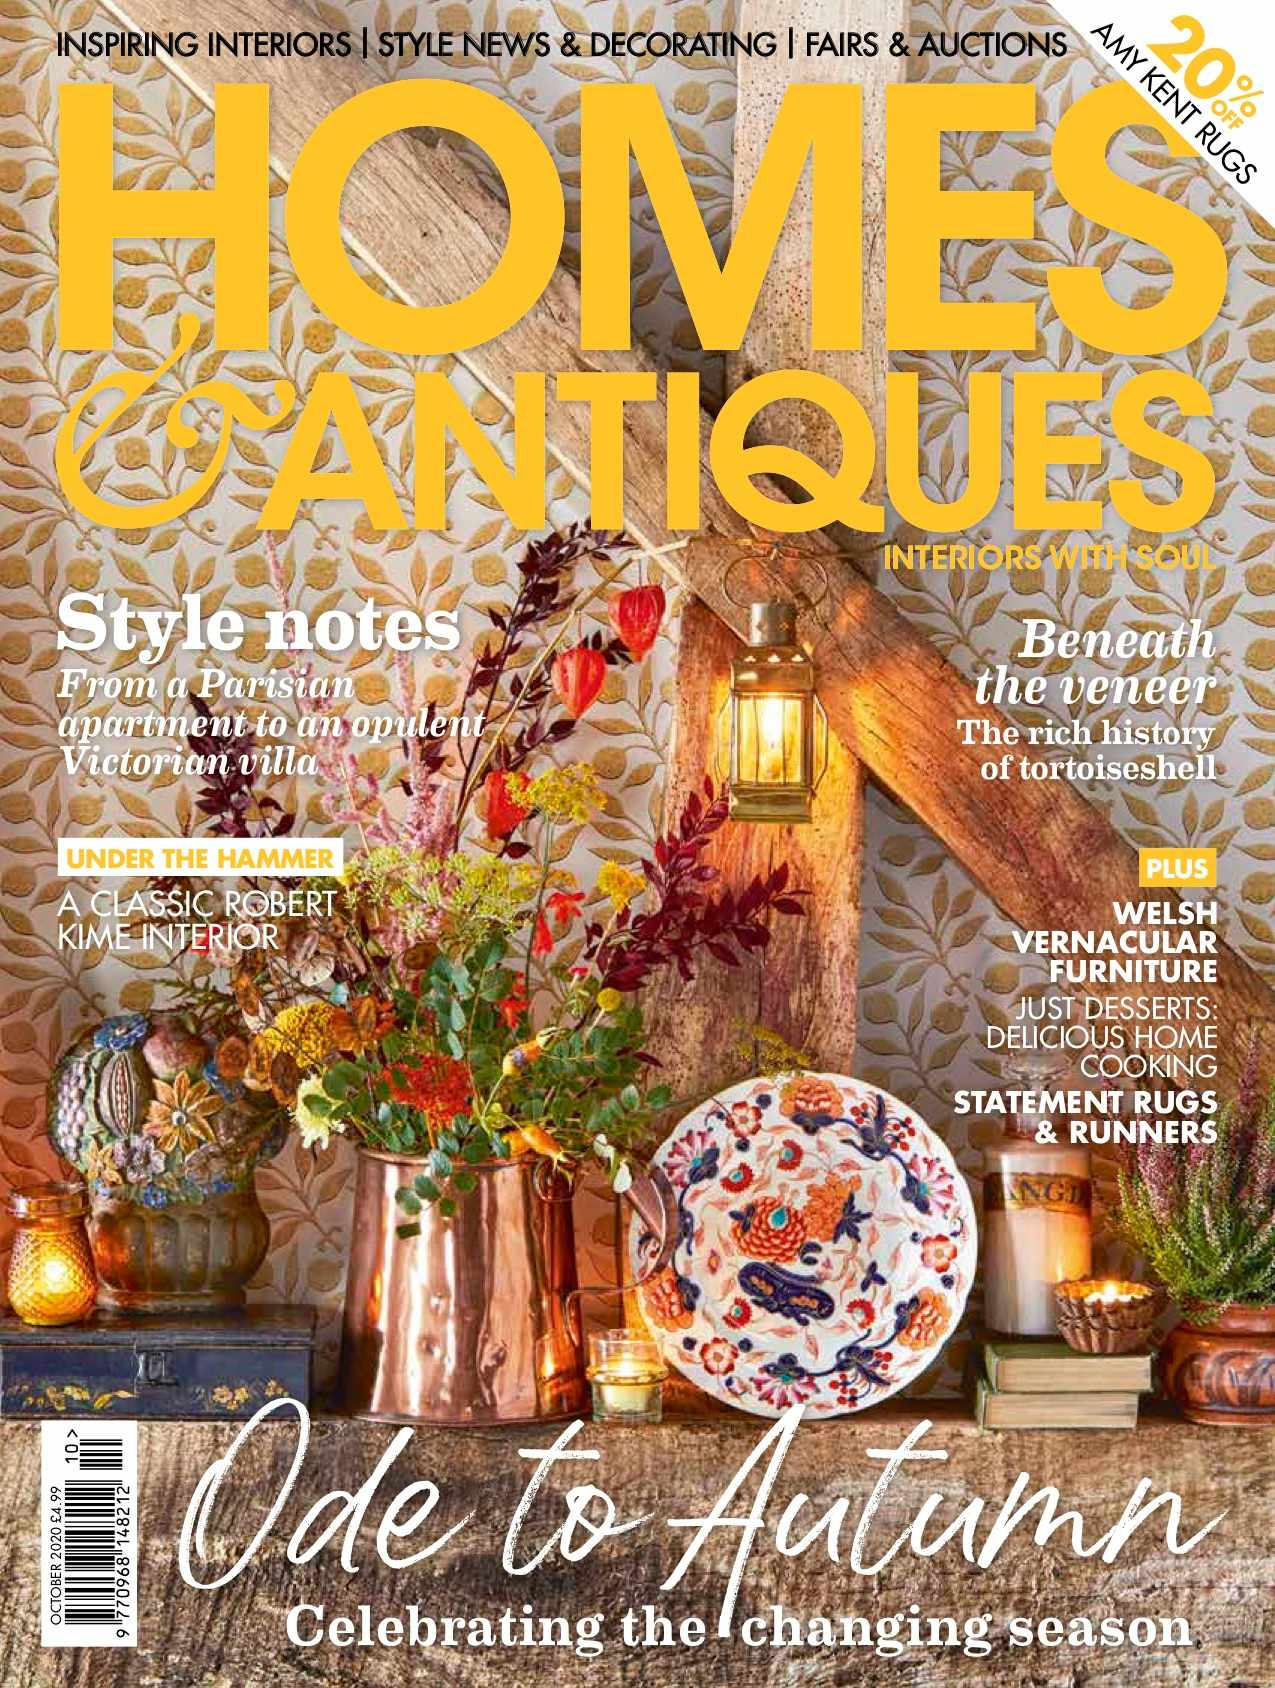 Homes & Antiques - October 2020 cover